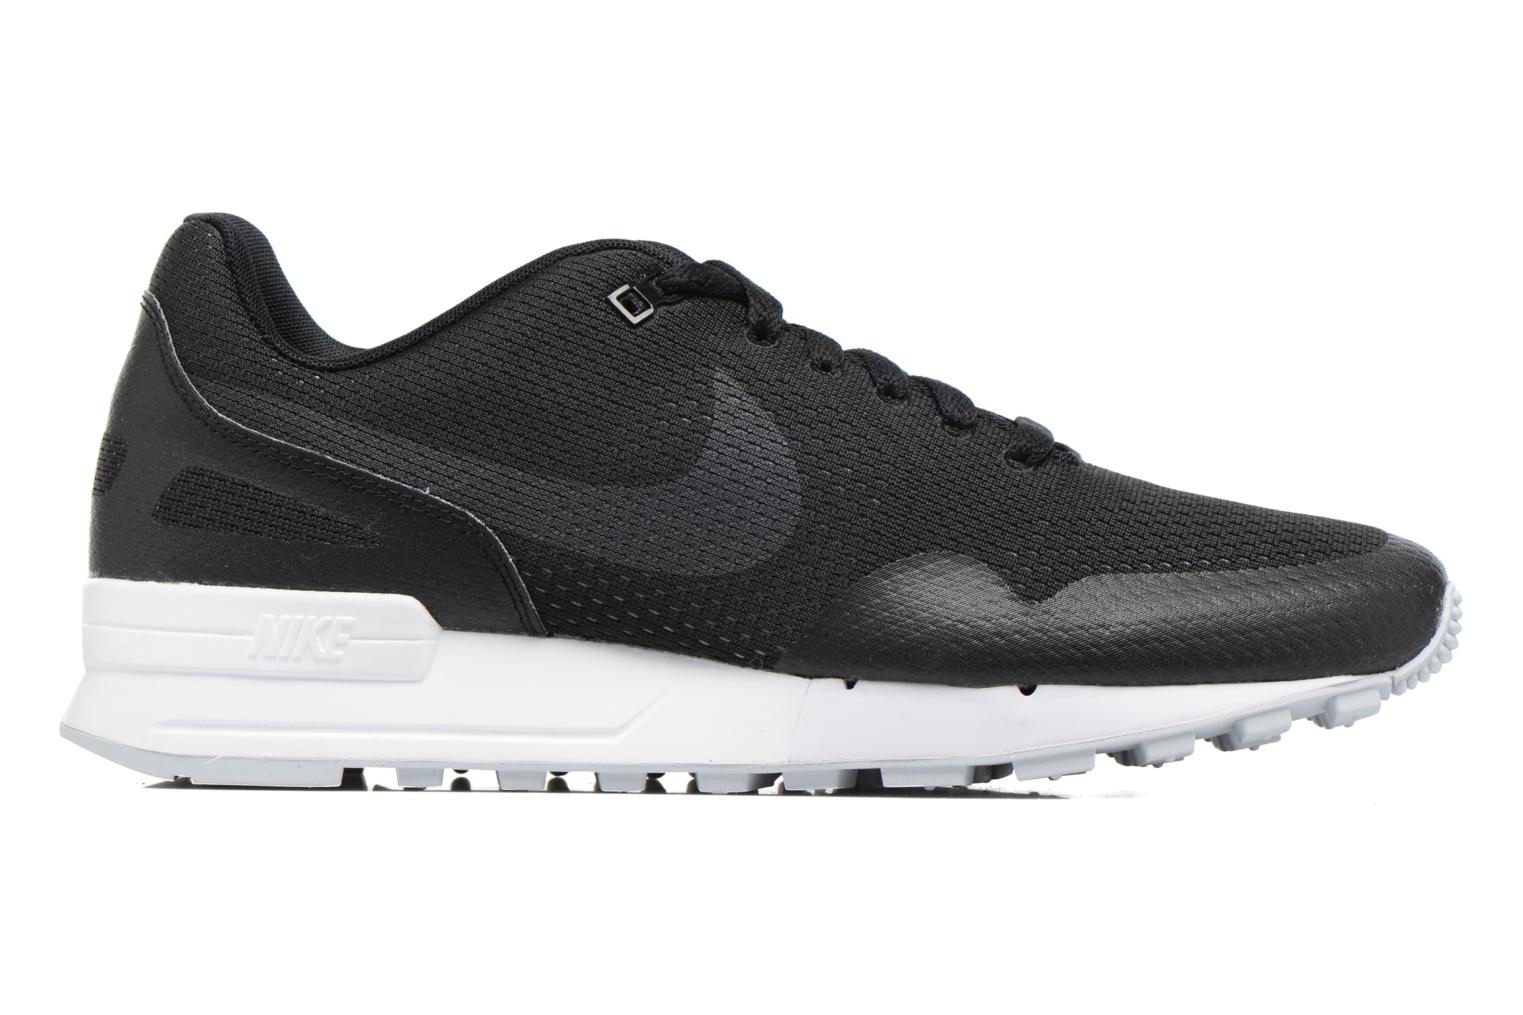 Black/Anthracite-Wolf Grey-White Nike Nike Air Pegasus 89 Egd (Noir)